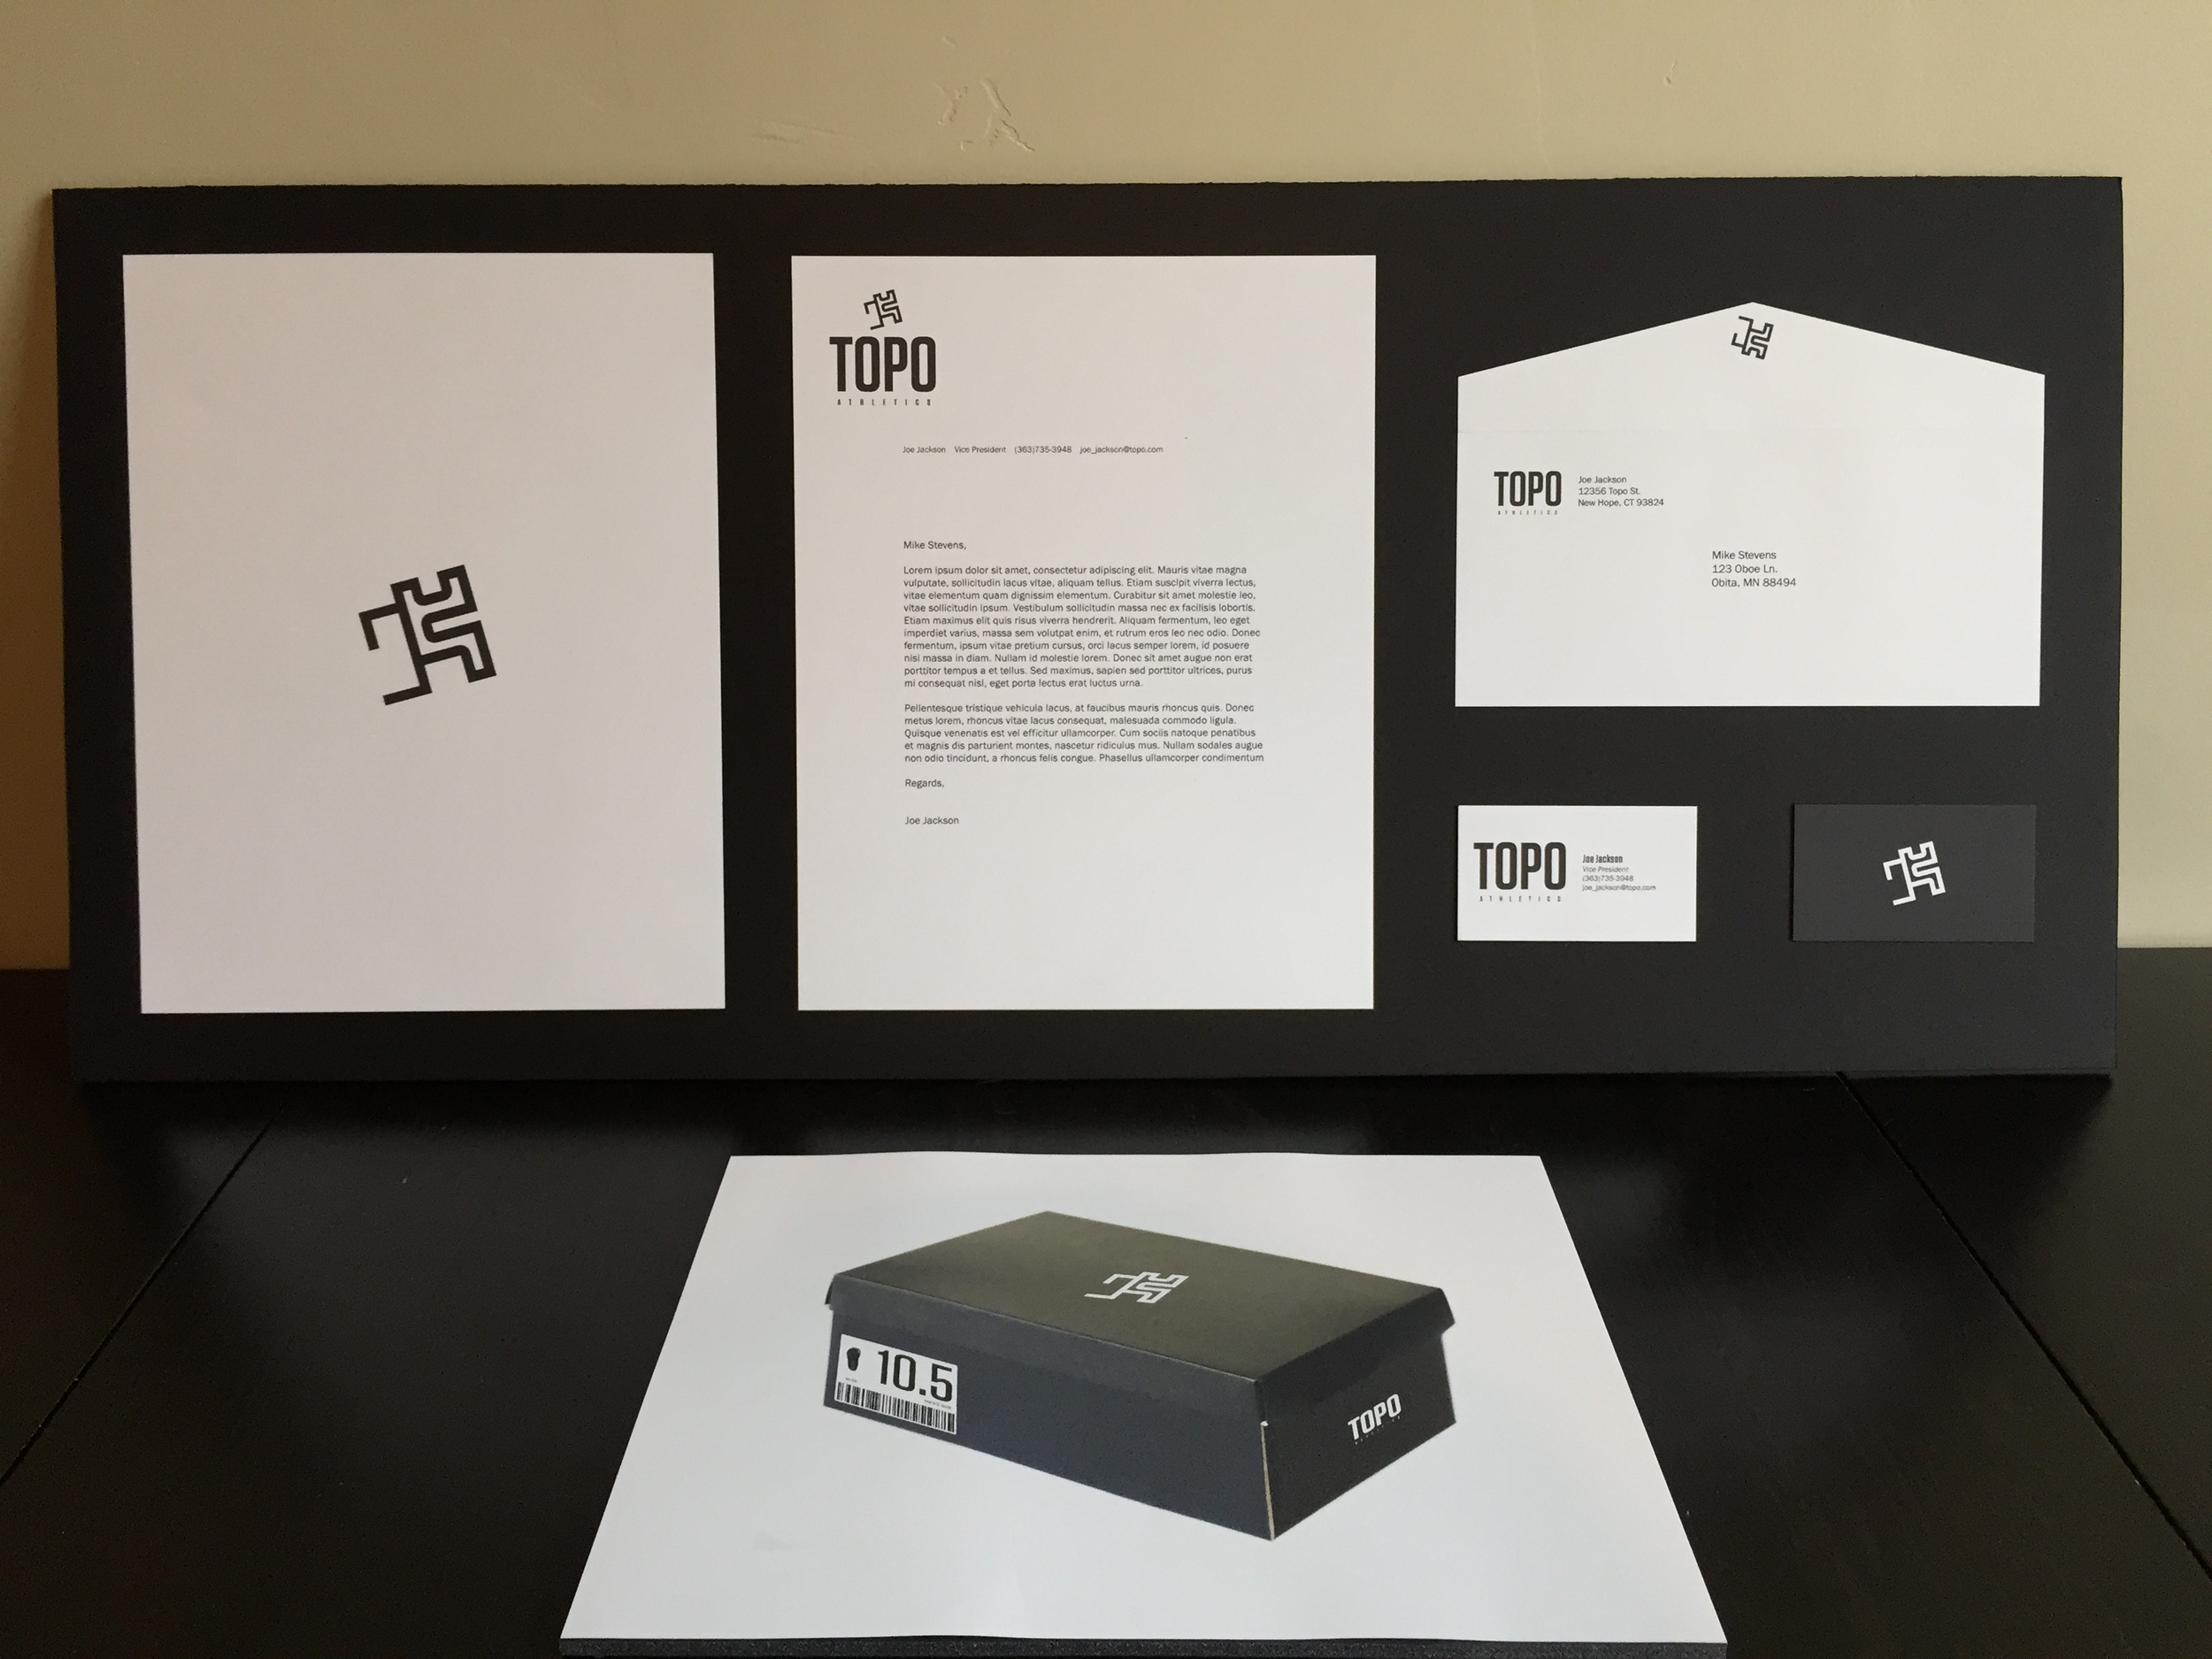 Topo: A Sportswear Company   Designed by a Advertising major